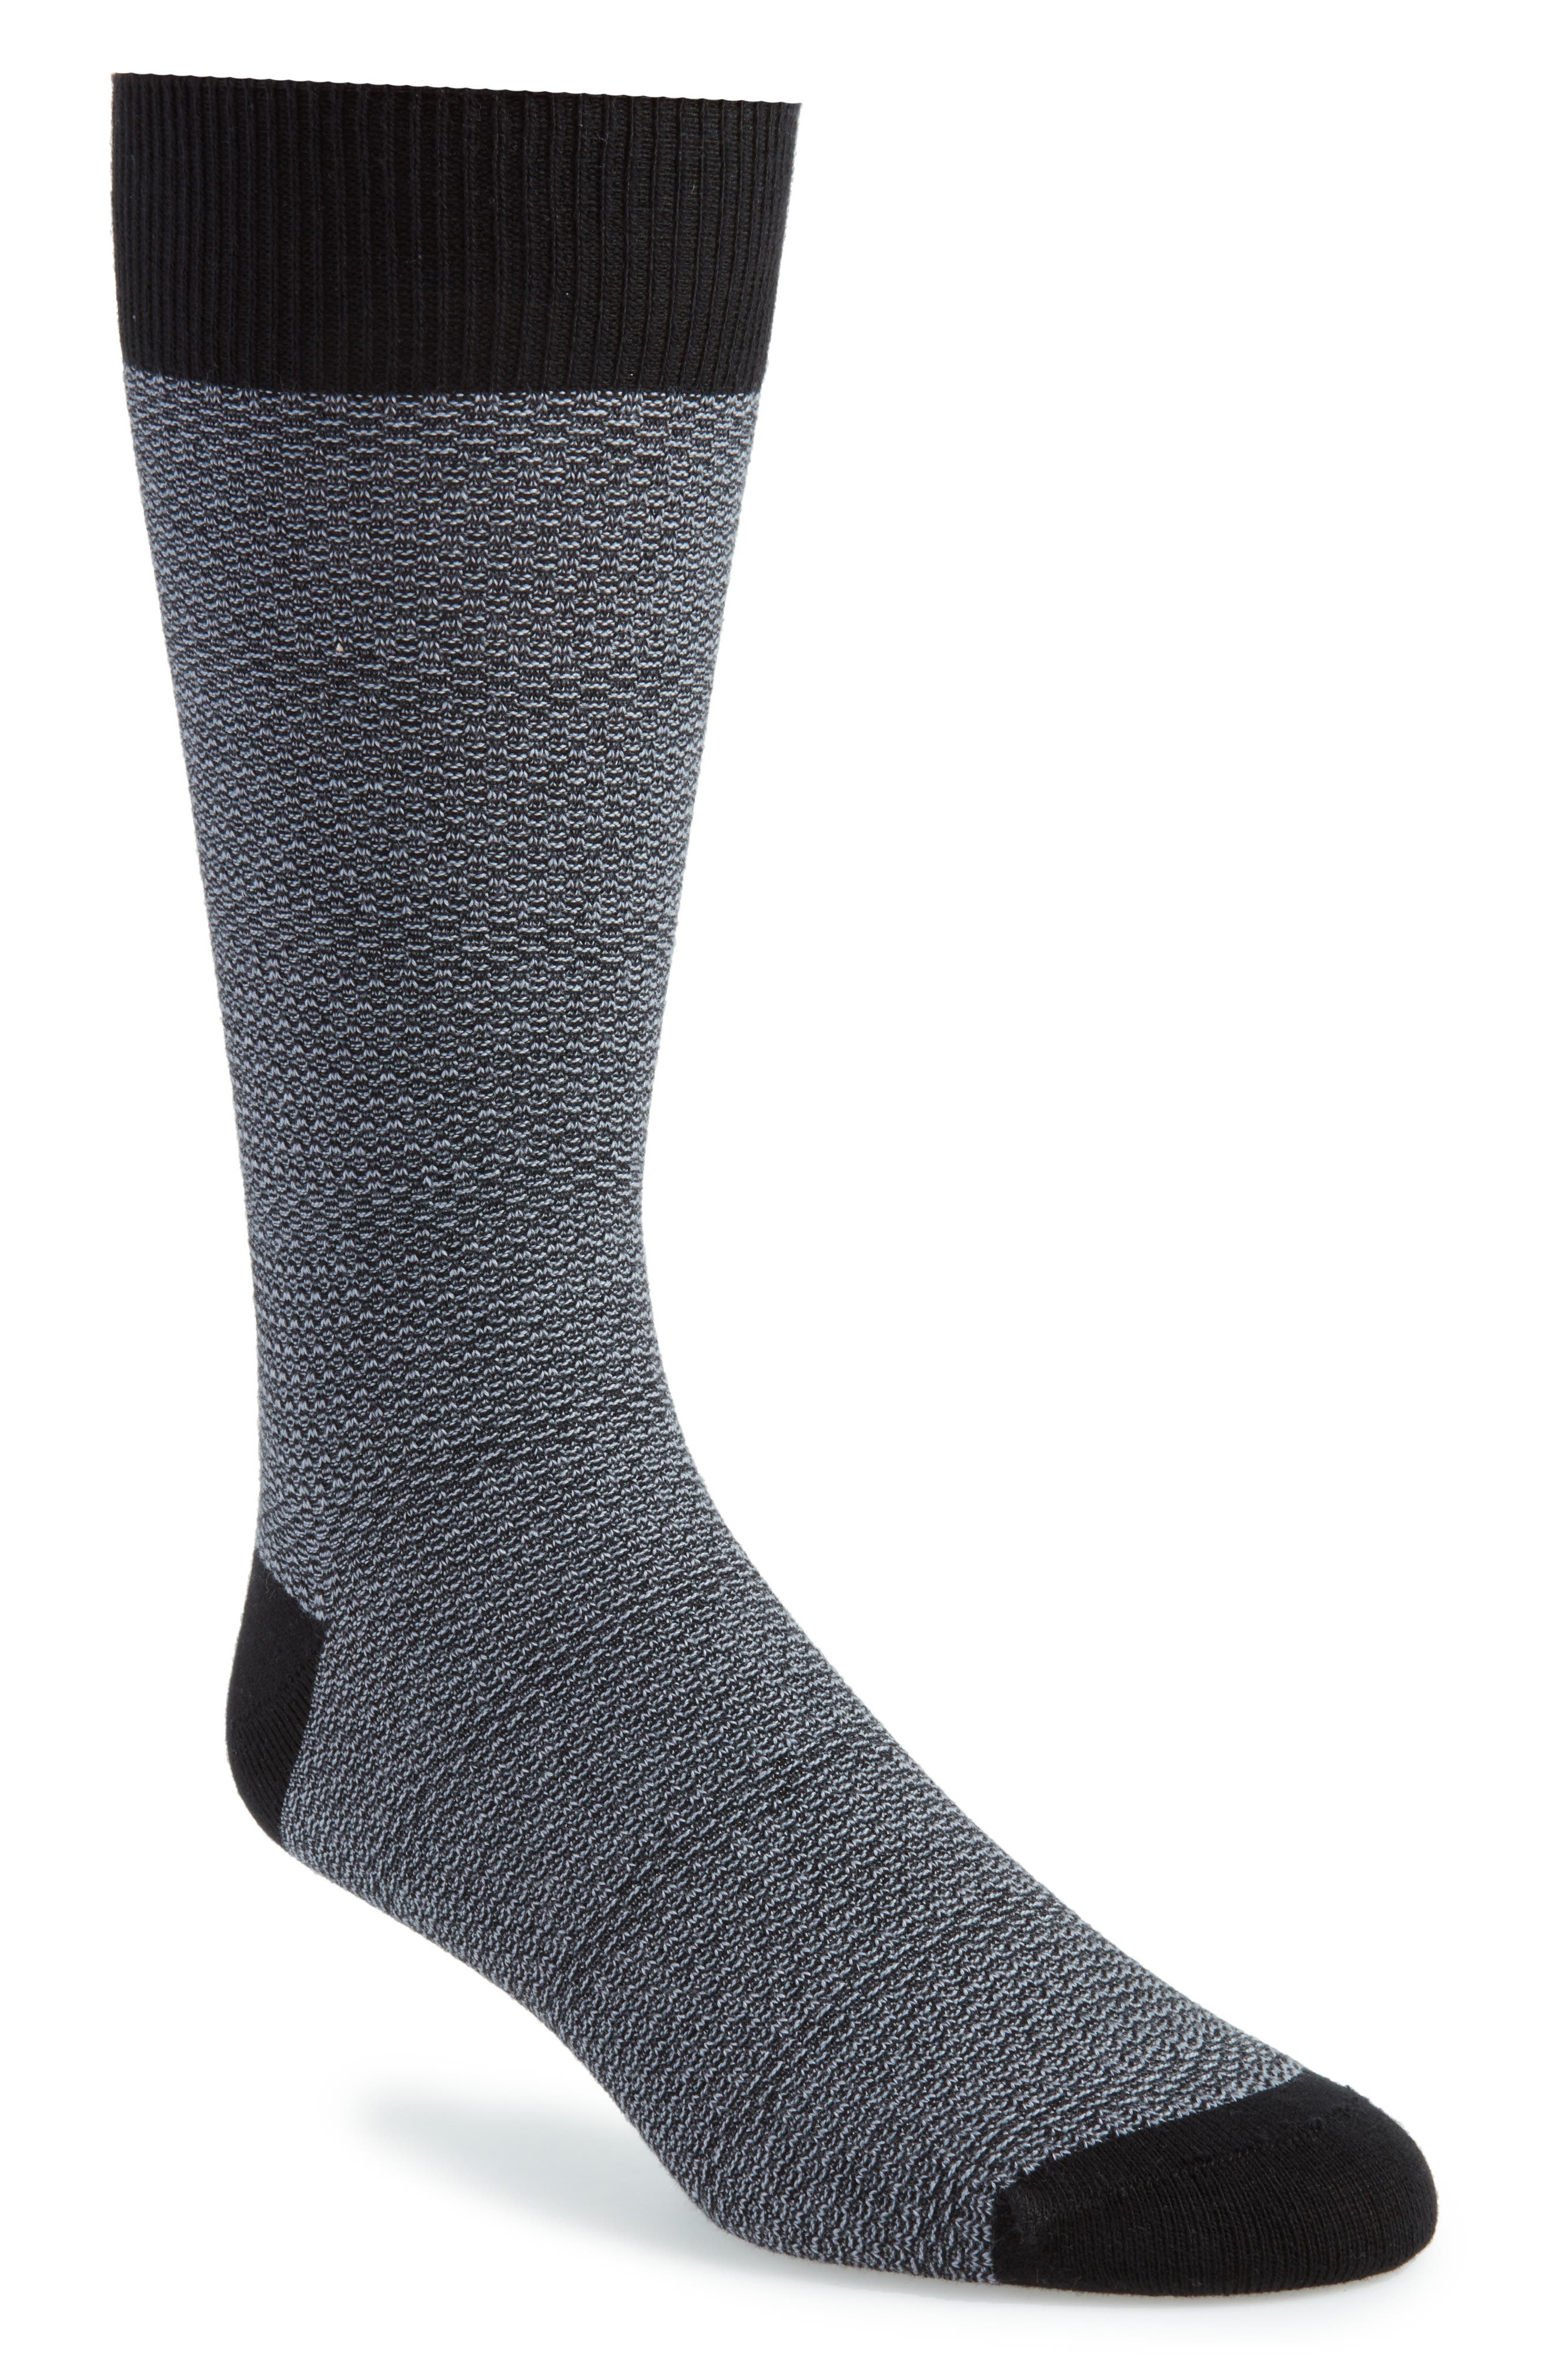 Sophshe Solid Socks,                         Main,                         color, Black